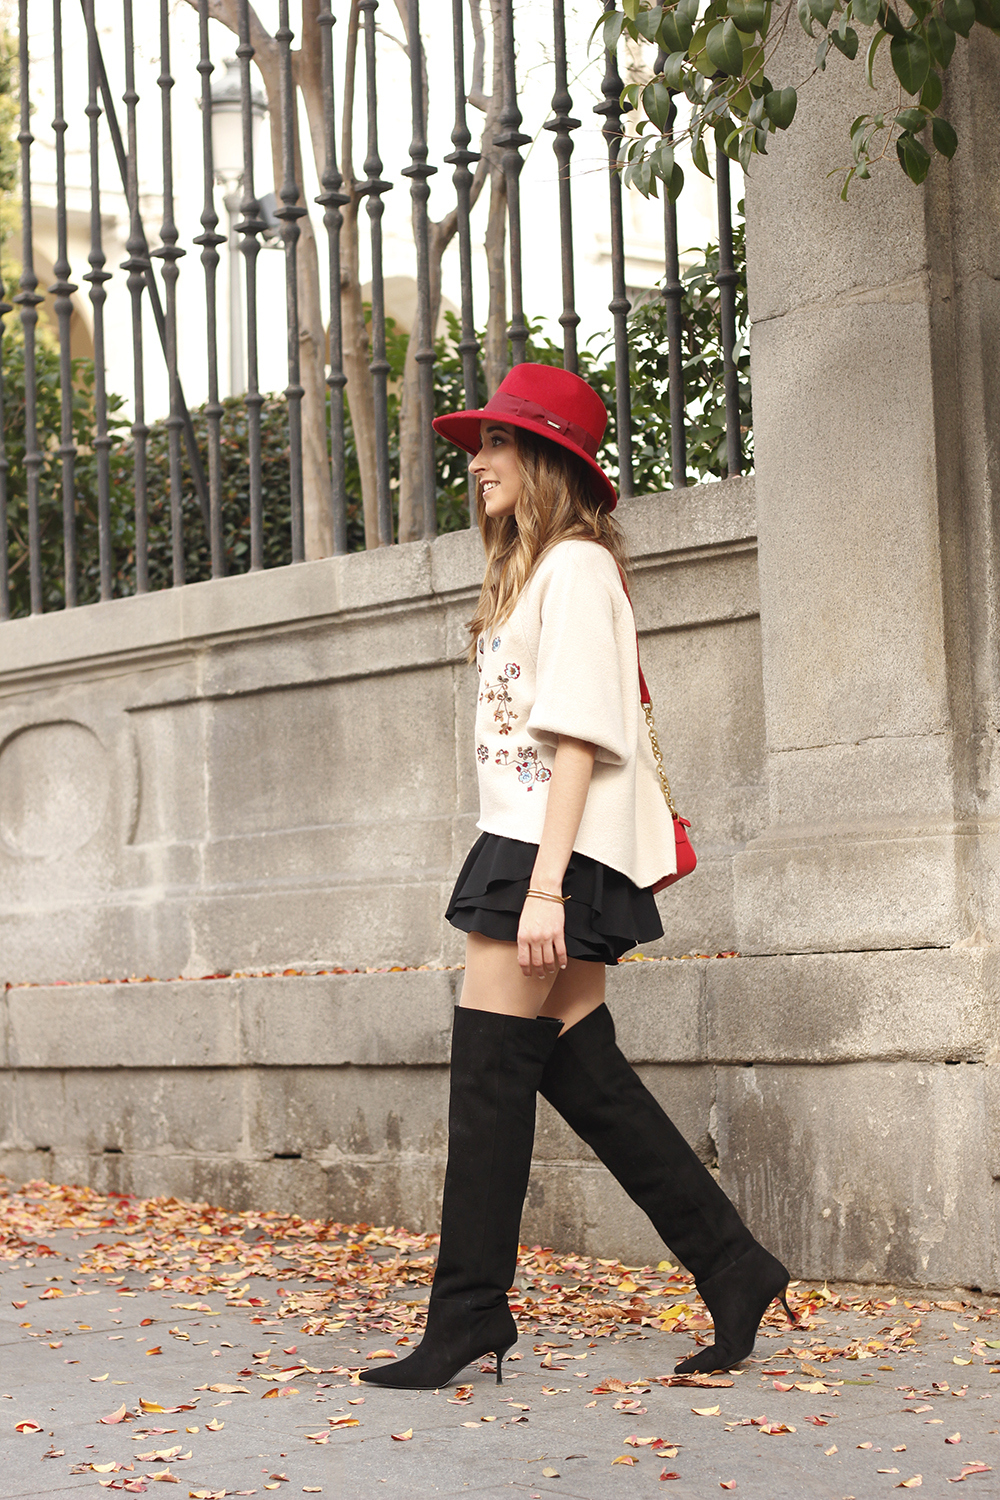 beige jersey with embroidered flowers over the knee black boots red hat street style fashion inspiration outfit03